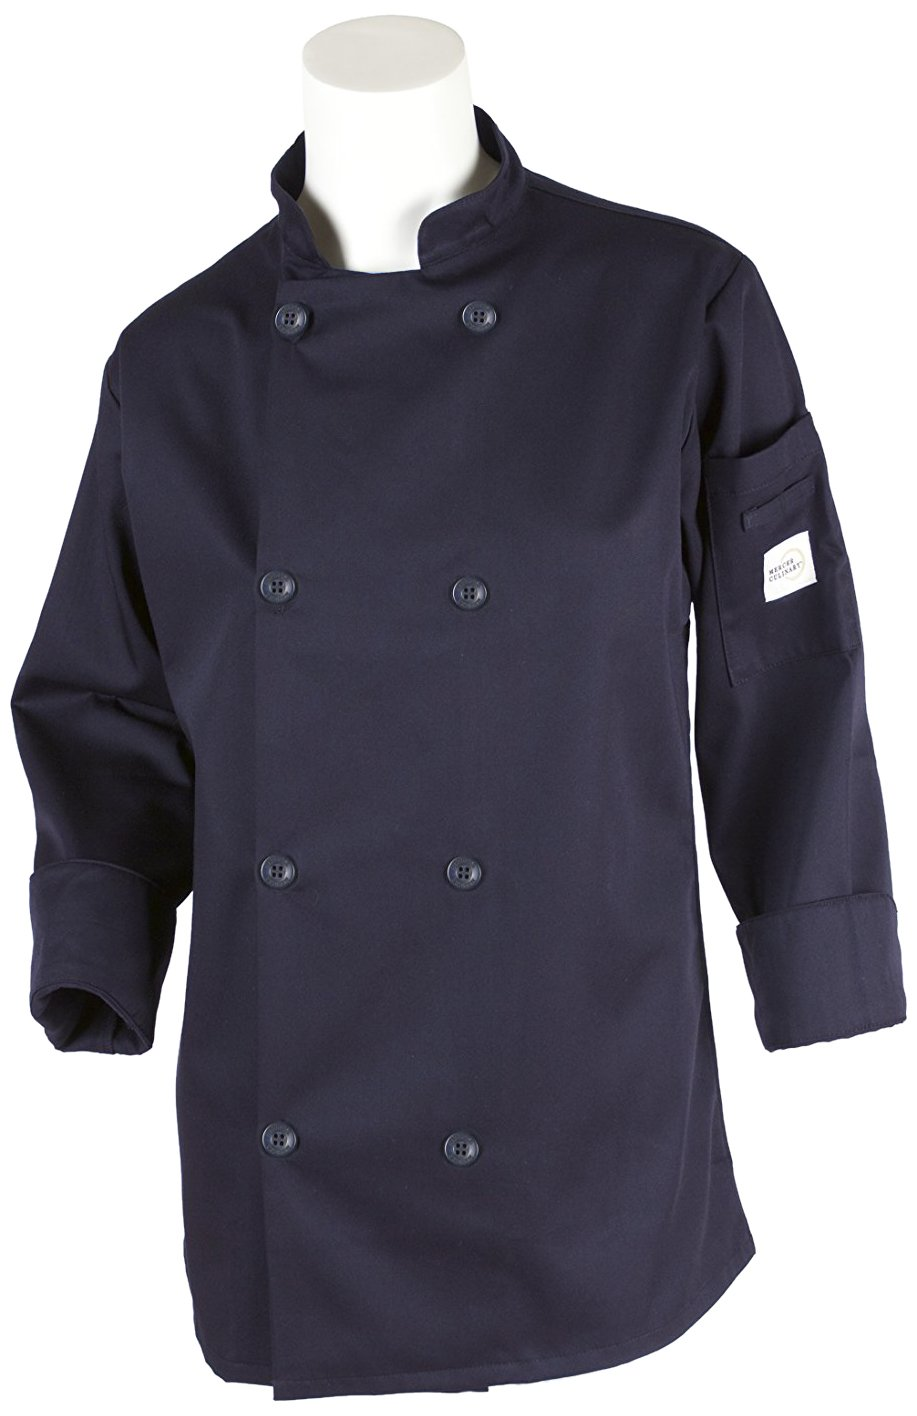 Mercer Culinary M60020NB2X Millennia Women's Cook Jacket with Traditional Button, XX-Large, Navy Blue